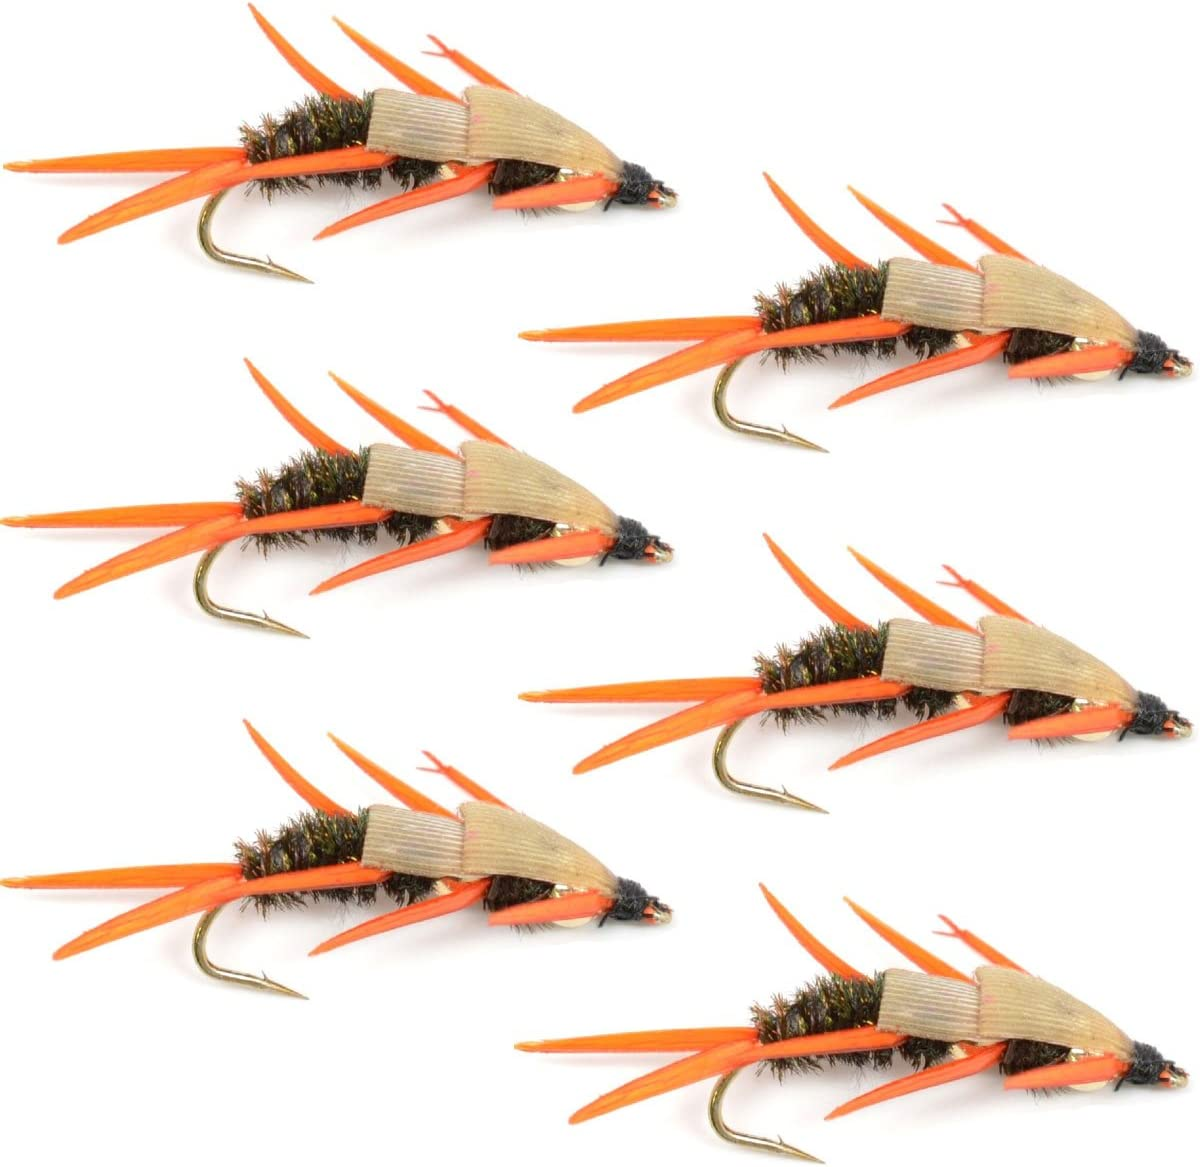 Double Bead Peacock 25% OFF Stonefly Nymph with Amber Biot Fly Fish Soldering Legs